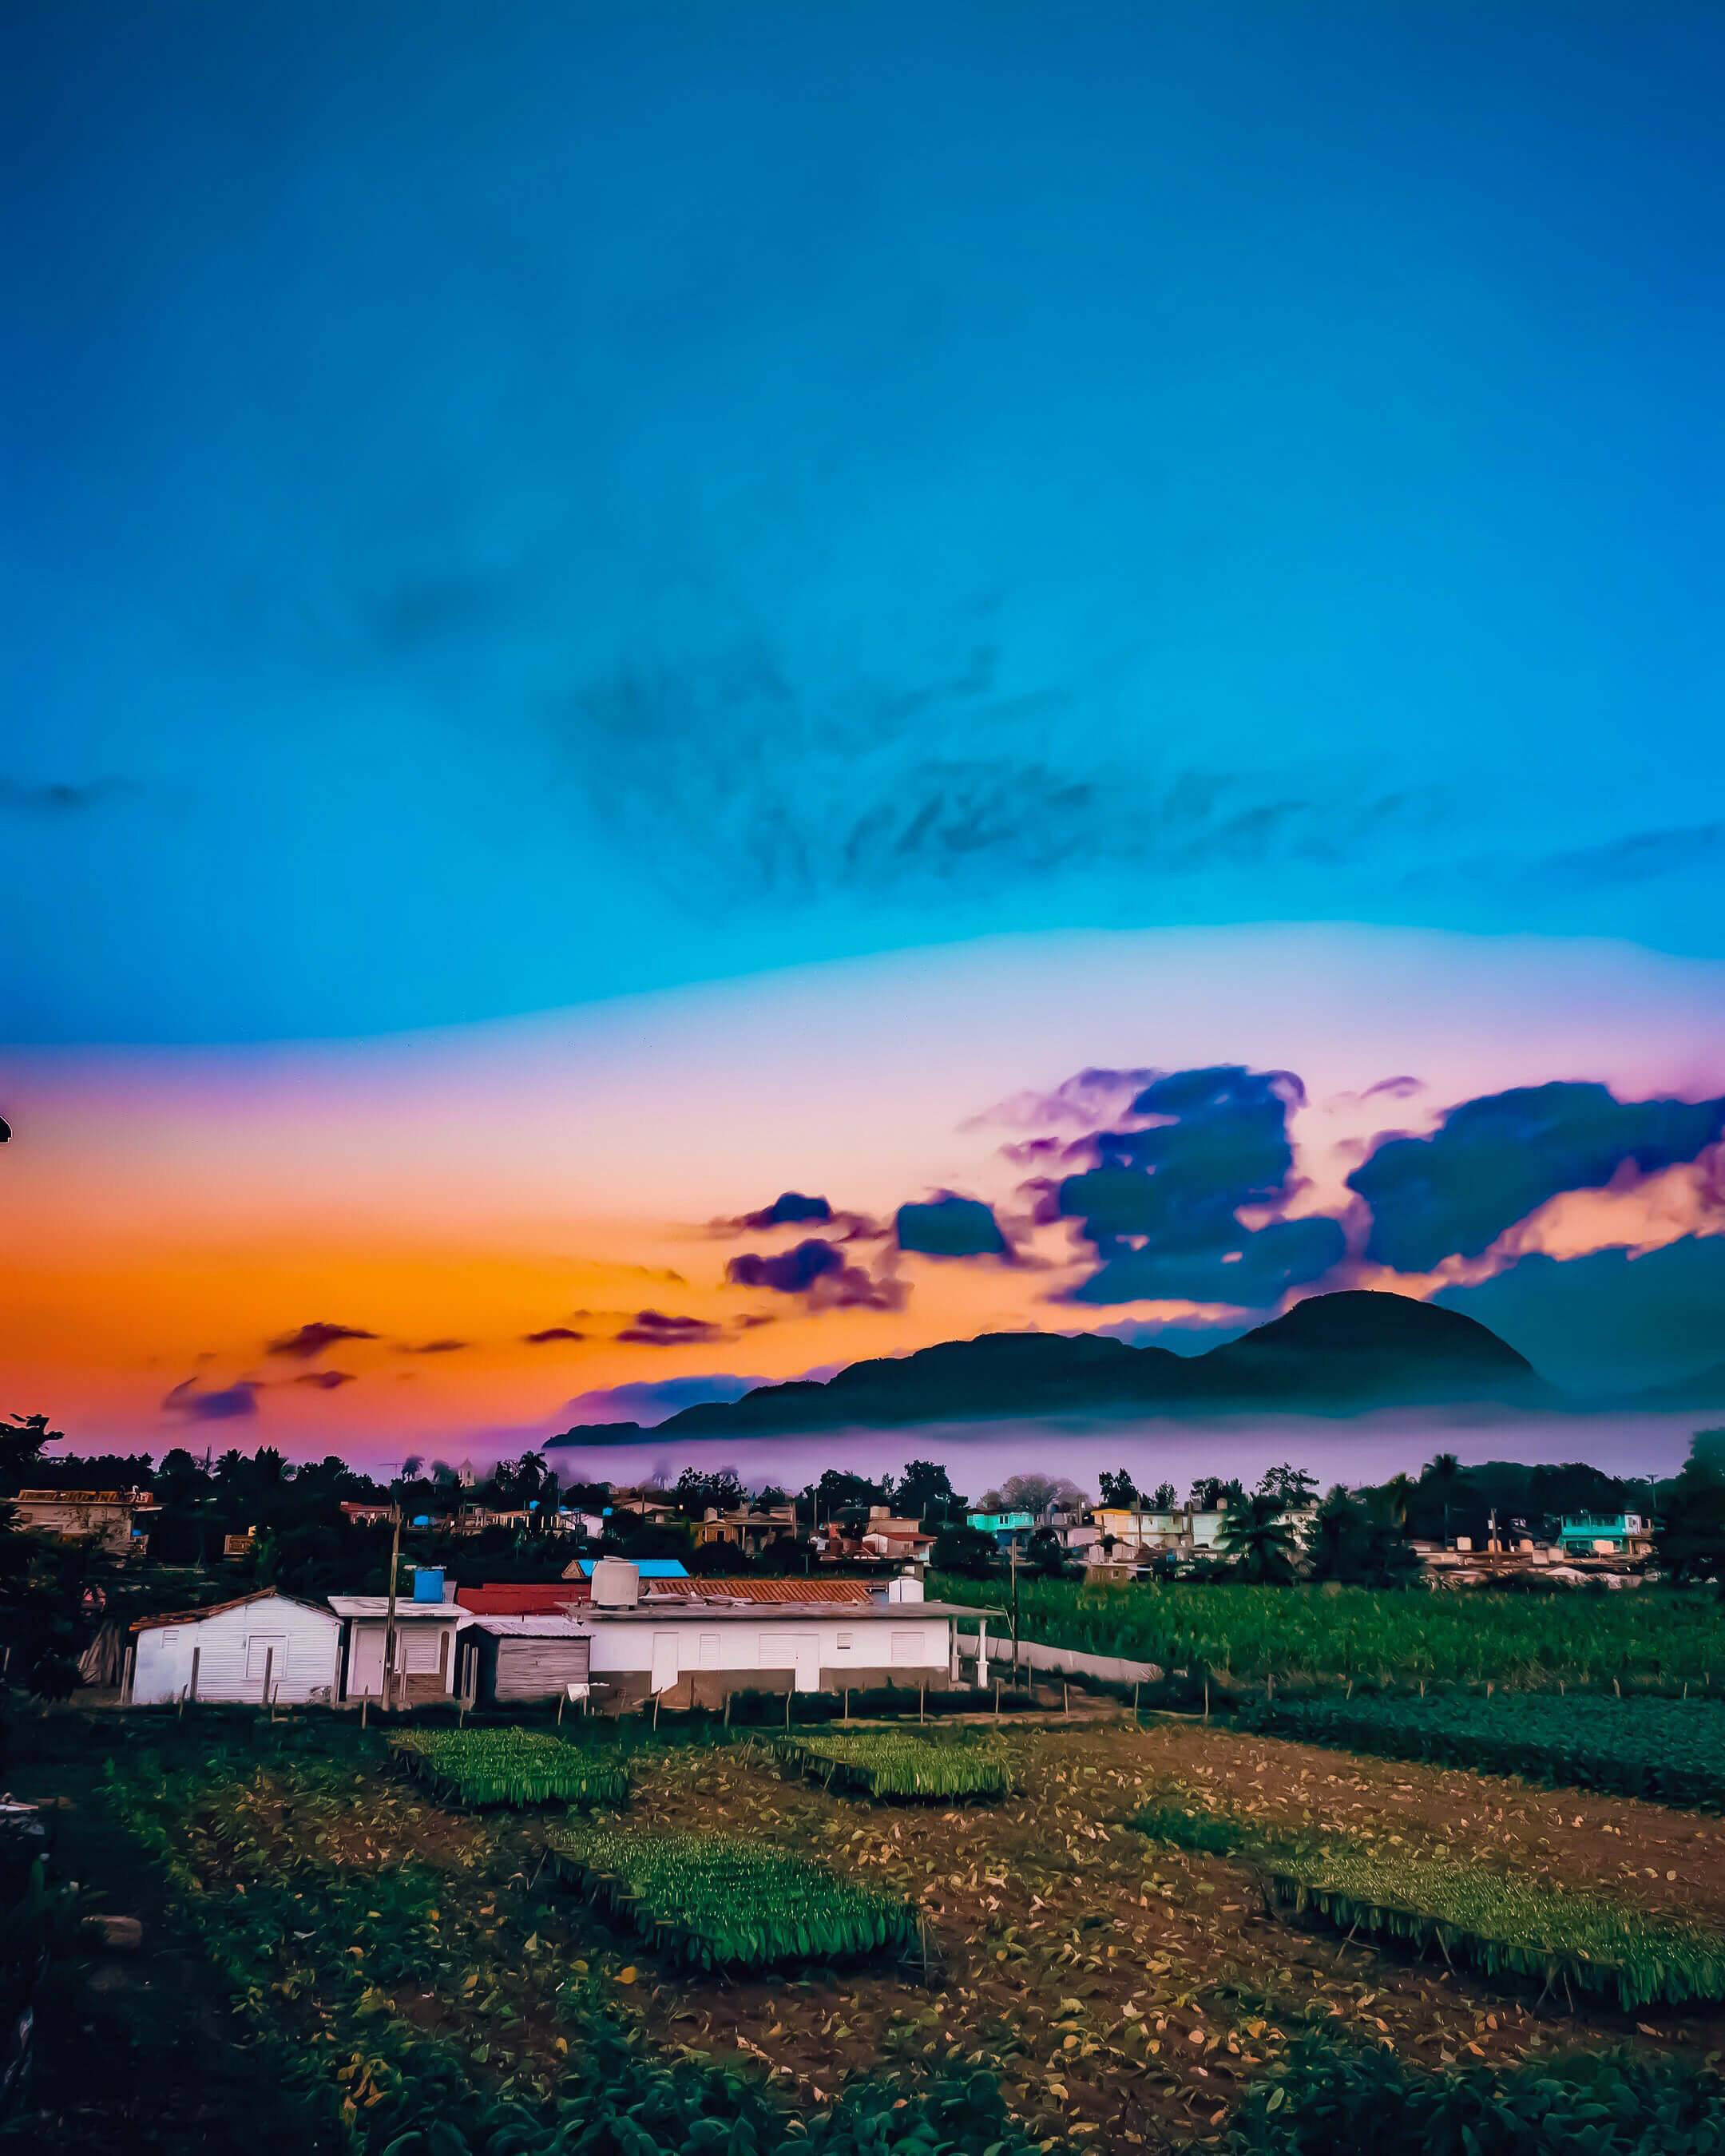 cuban_countryside_vinales_mogotes_cuba_sunrise_private_luxury_journeys.jpg